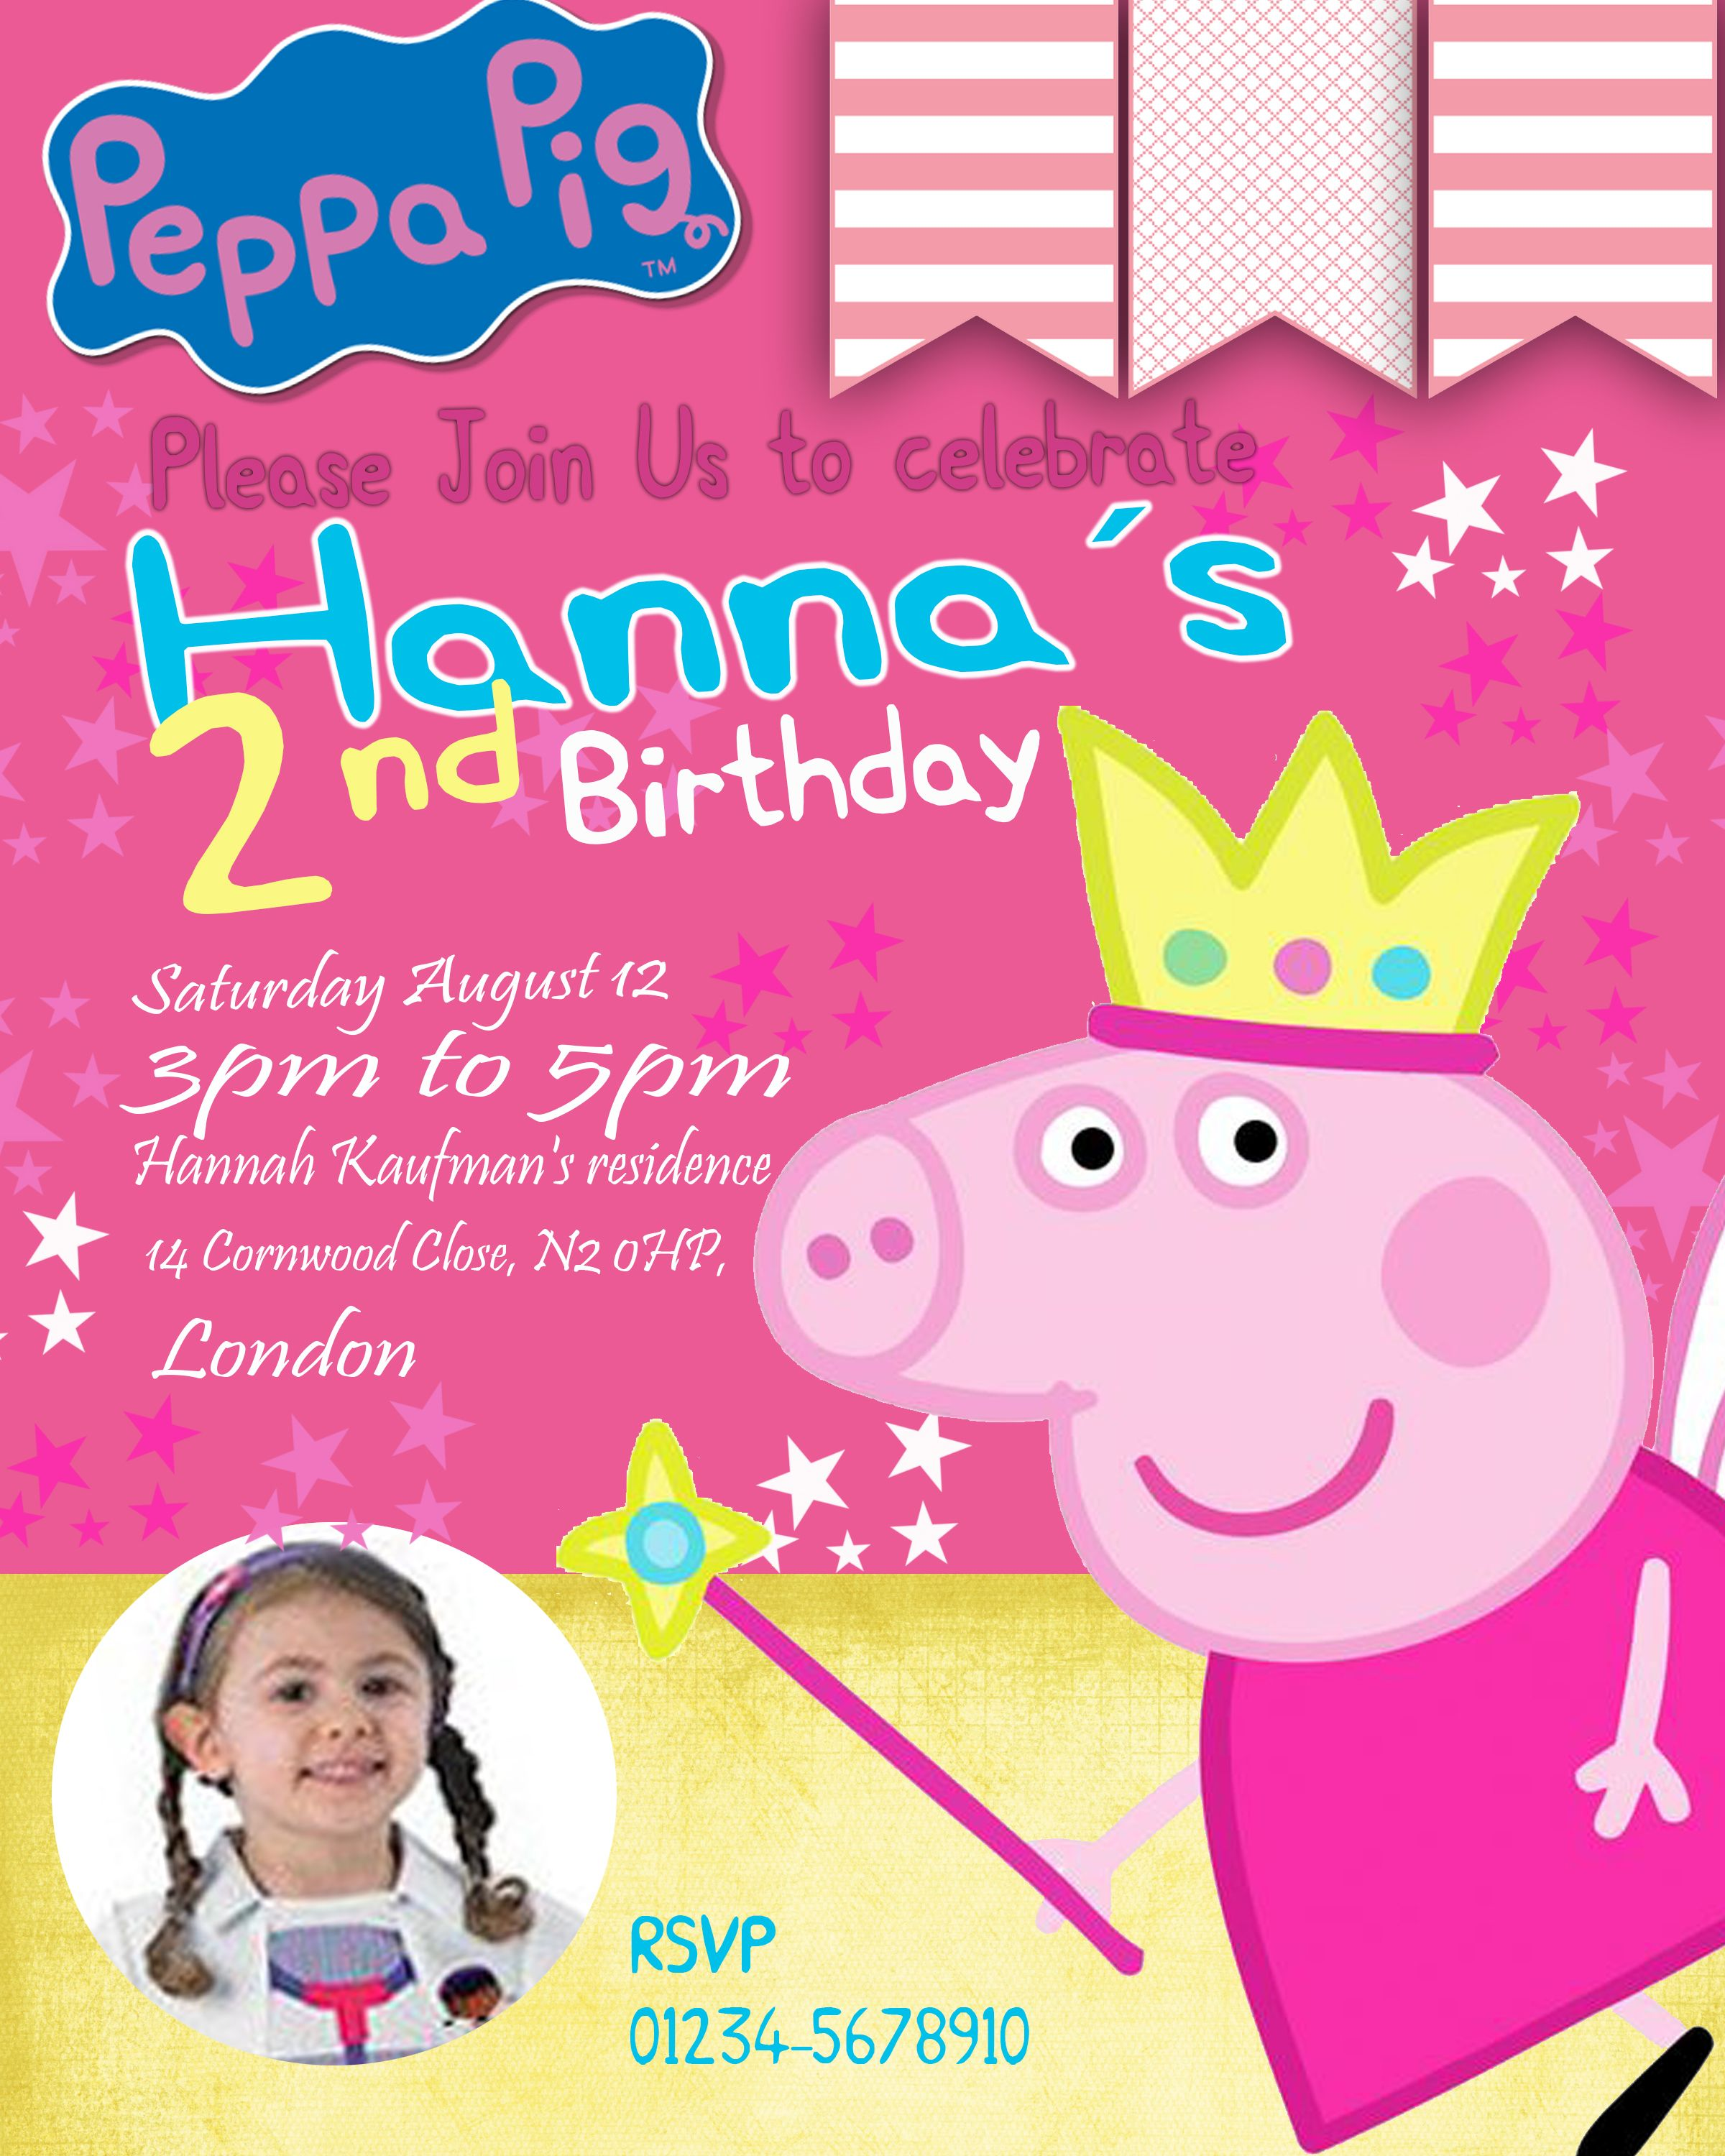 Peppa Pig Birthday Invitation With Photo Add On Oscarsitosroom Pig Birthday Invitations Peppa Pig Birthday Invitations Peppa Pig Invitations